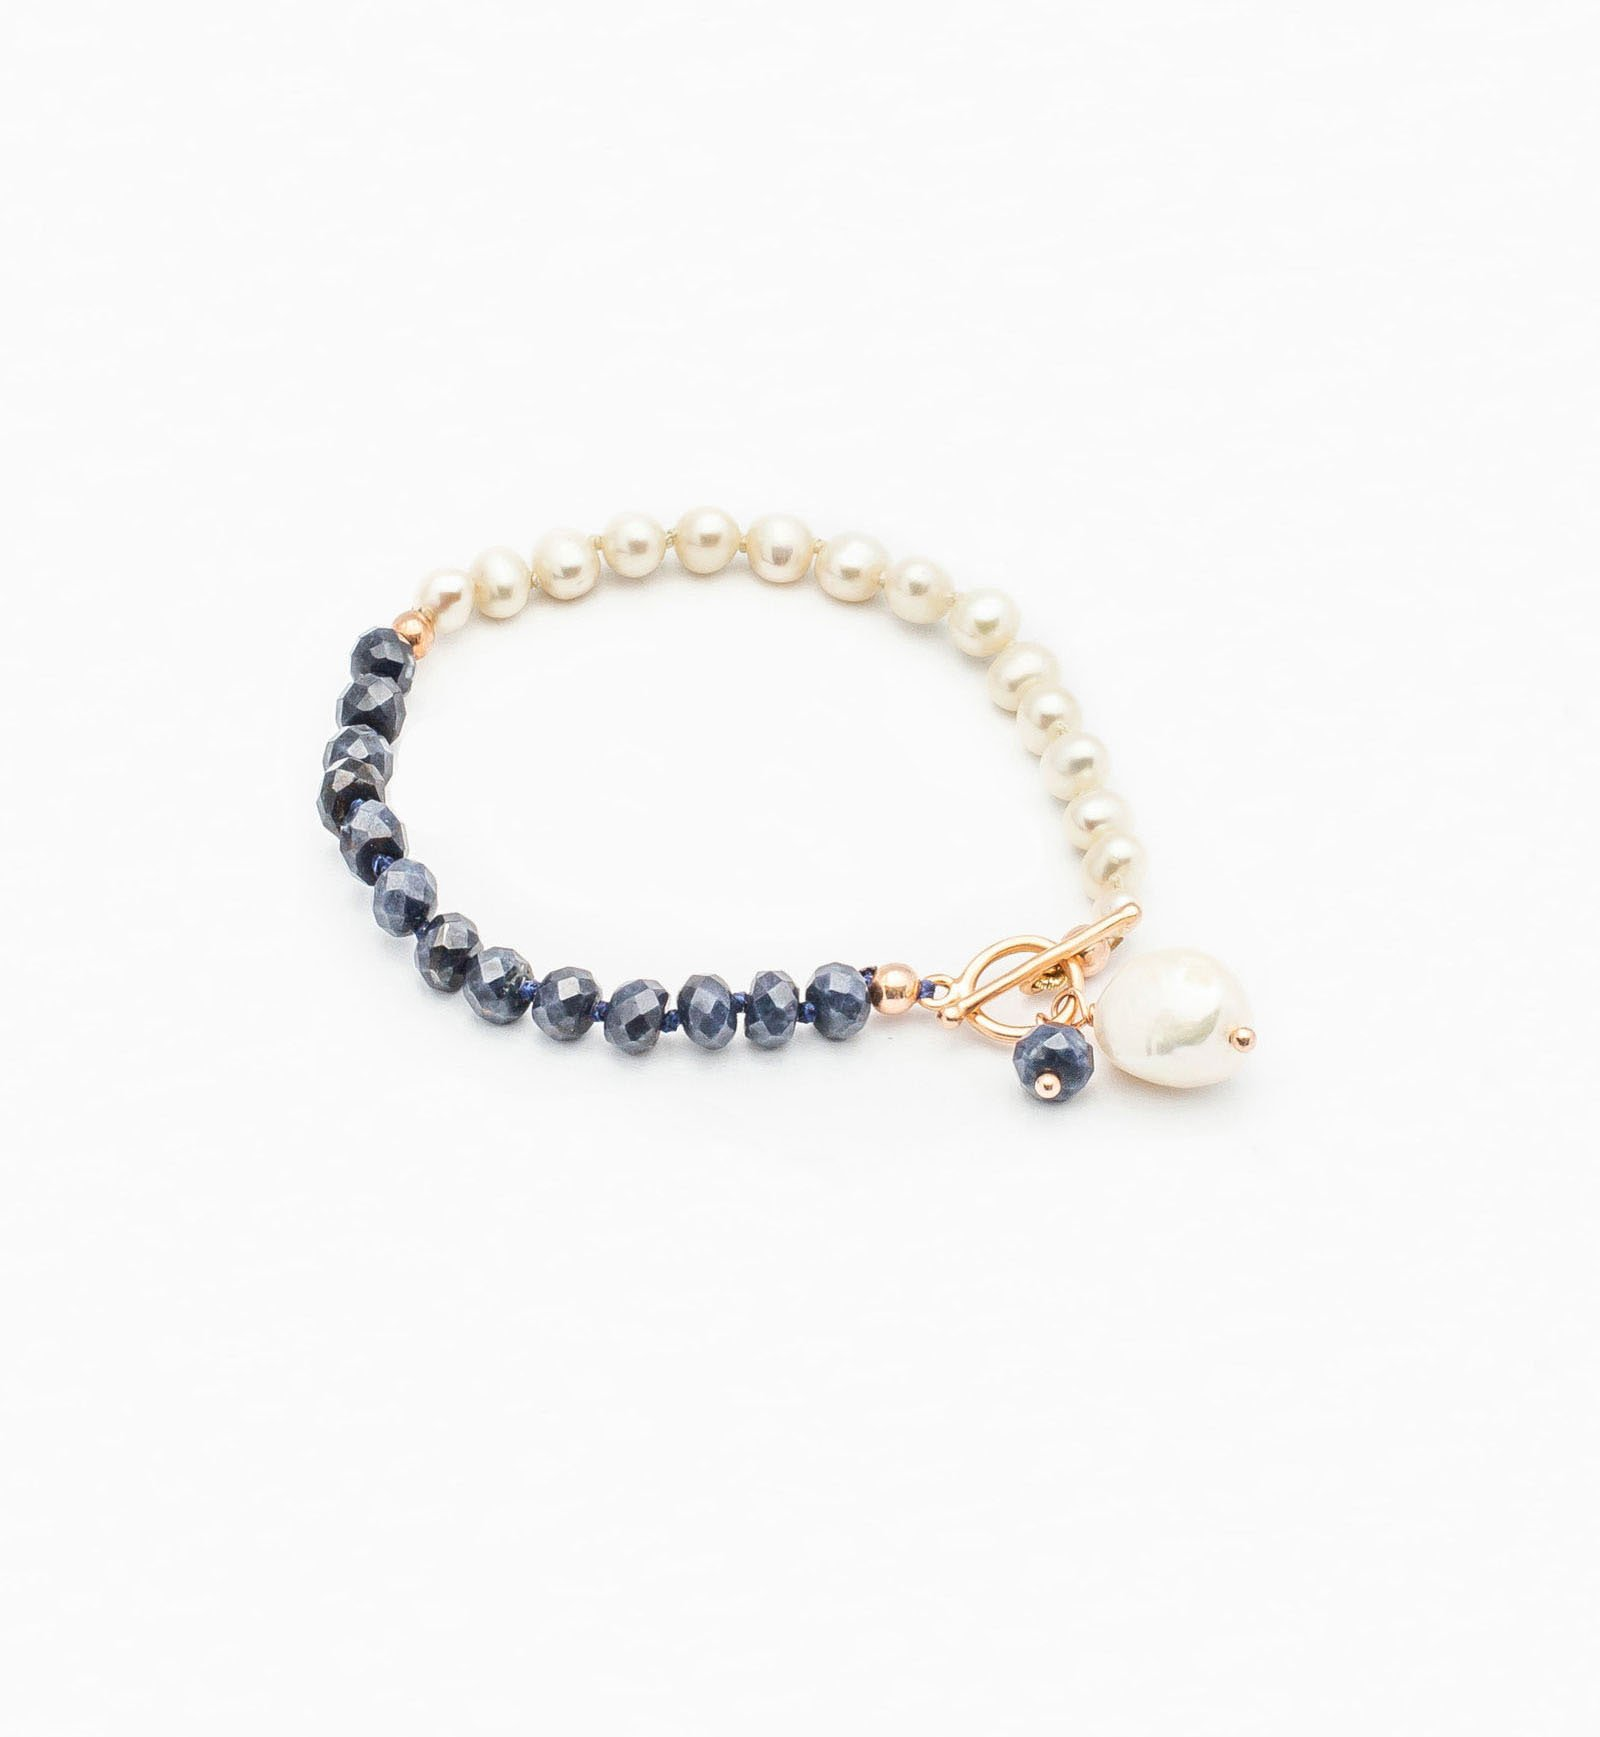 Bracelet with Sapphires & Pearls